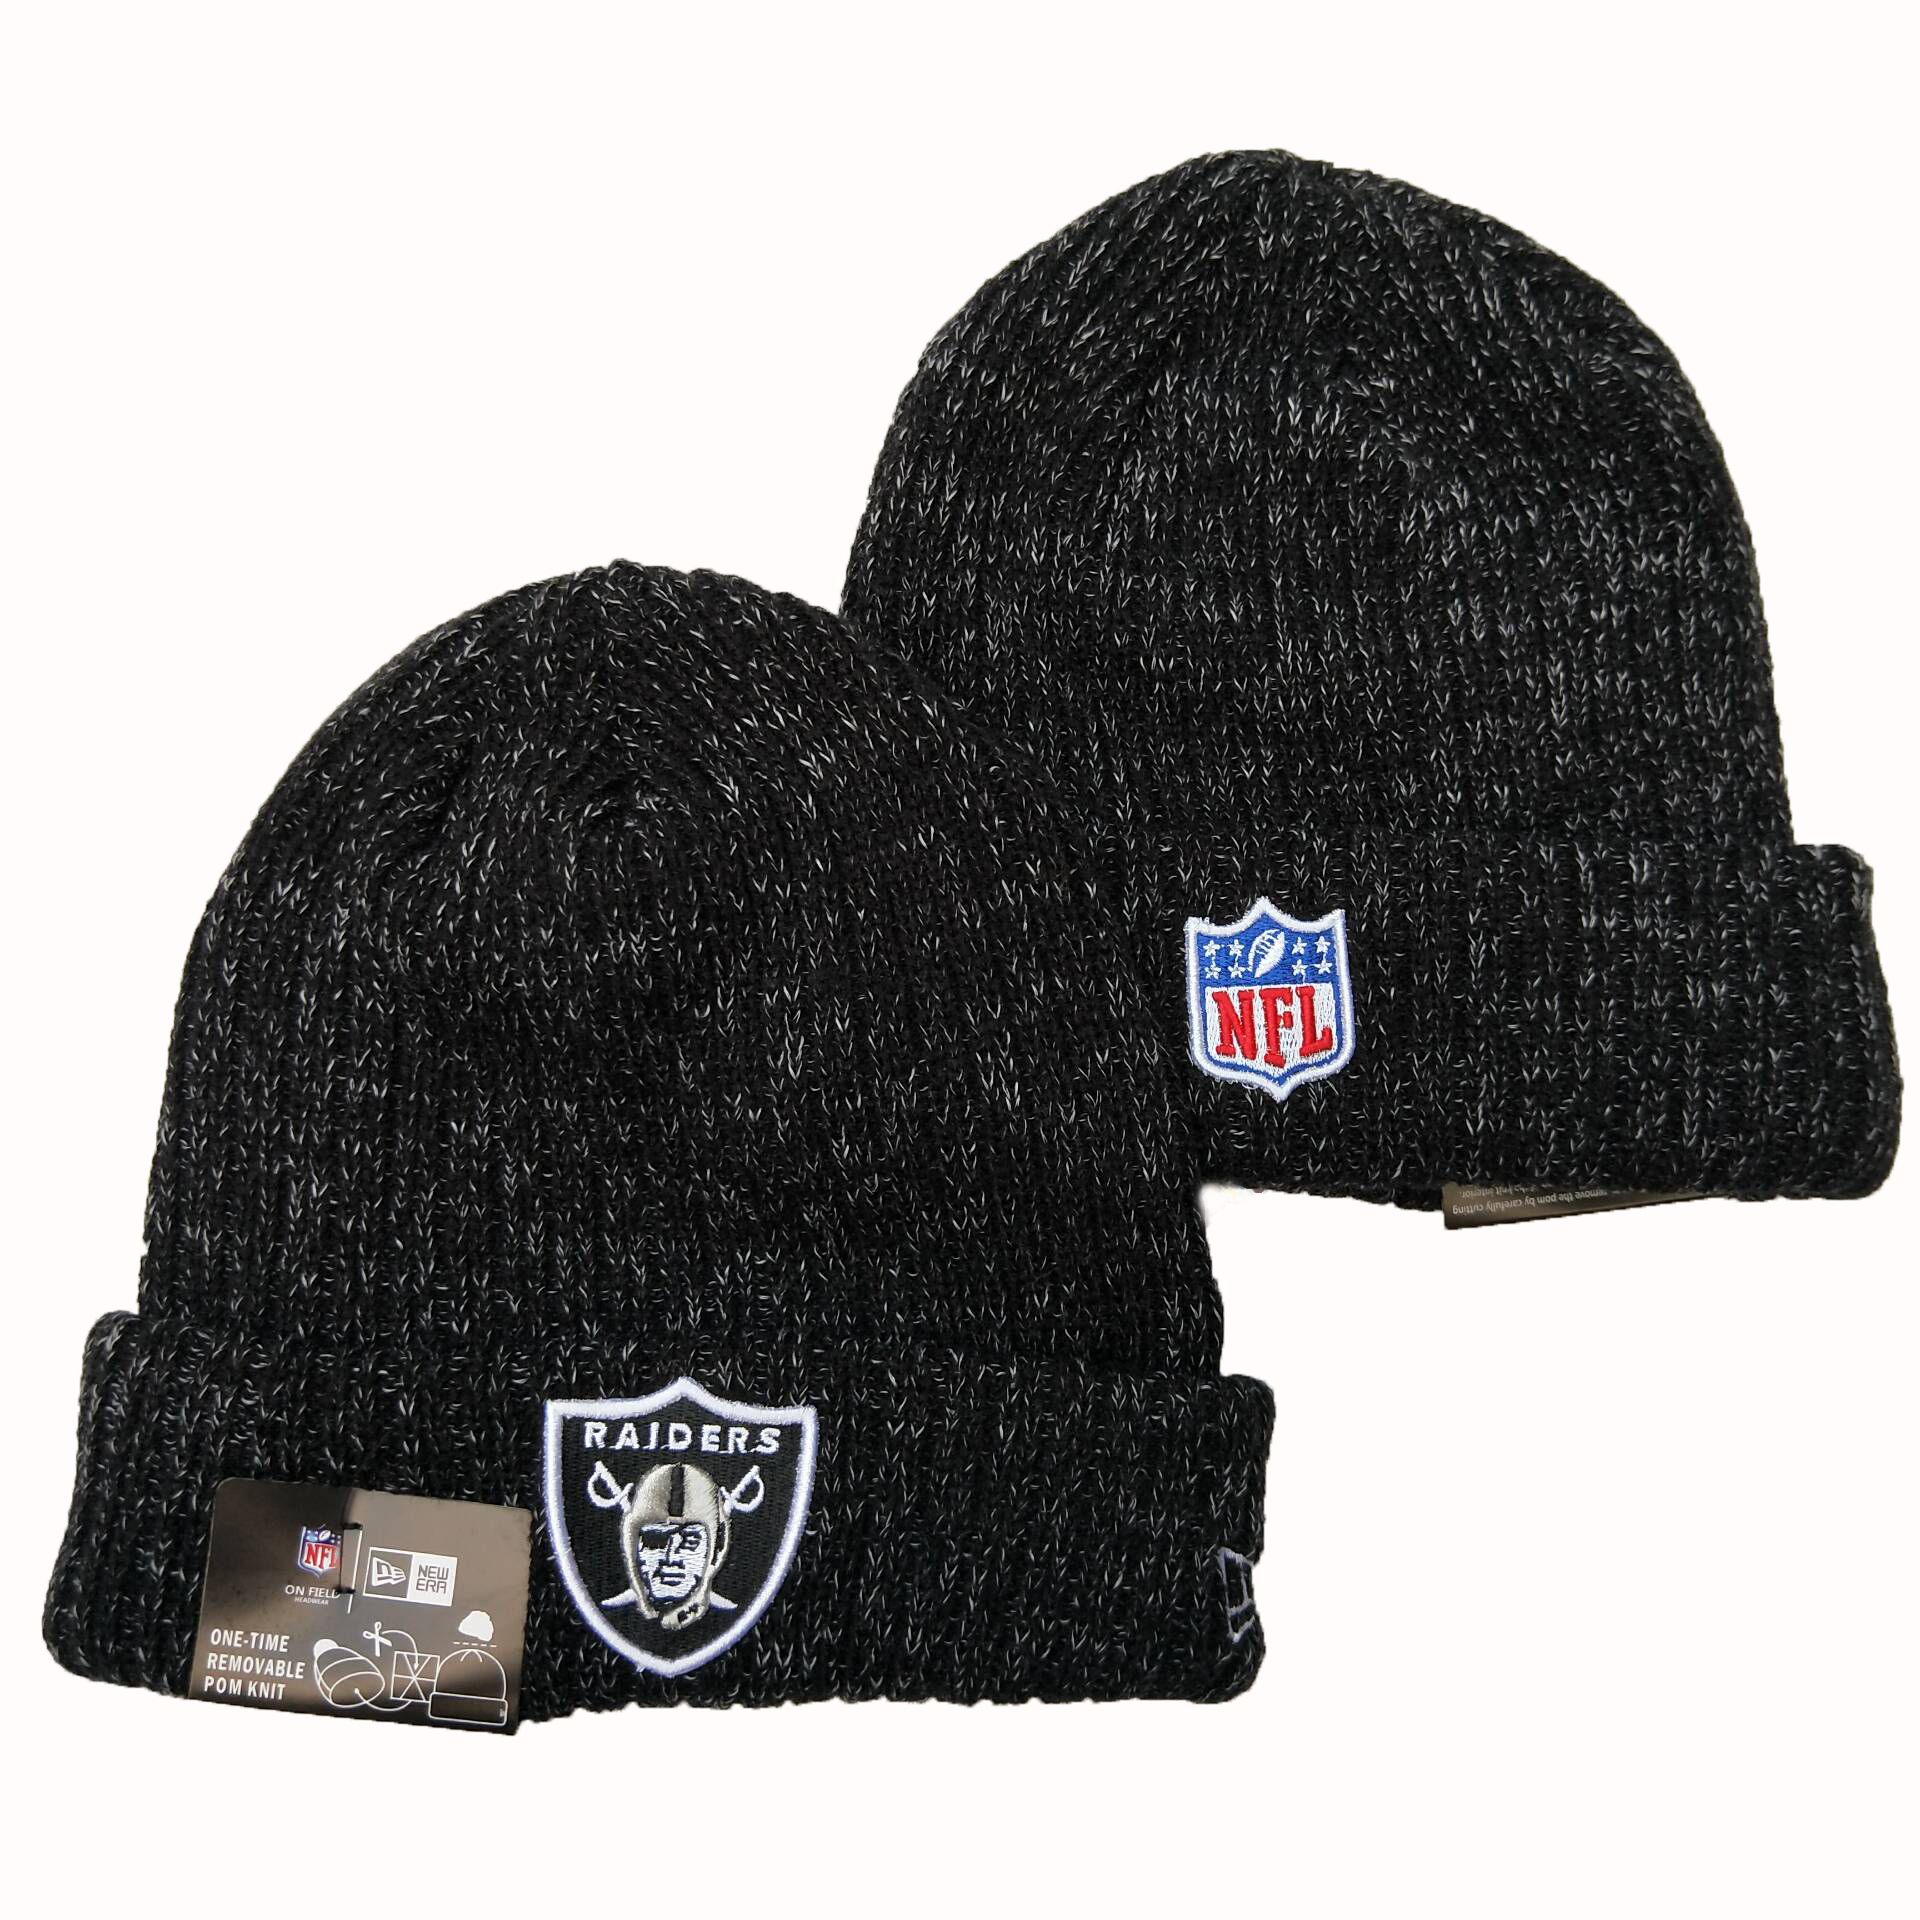 Las Vegas Raiders Knit Hats 065